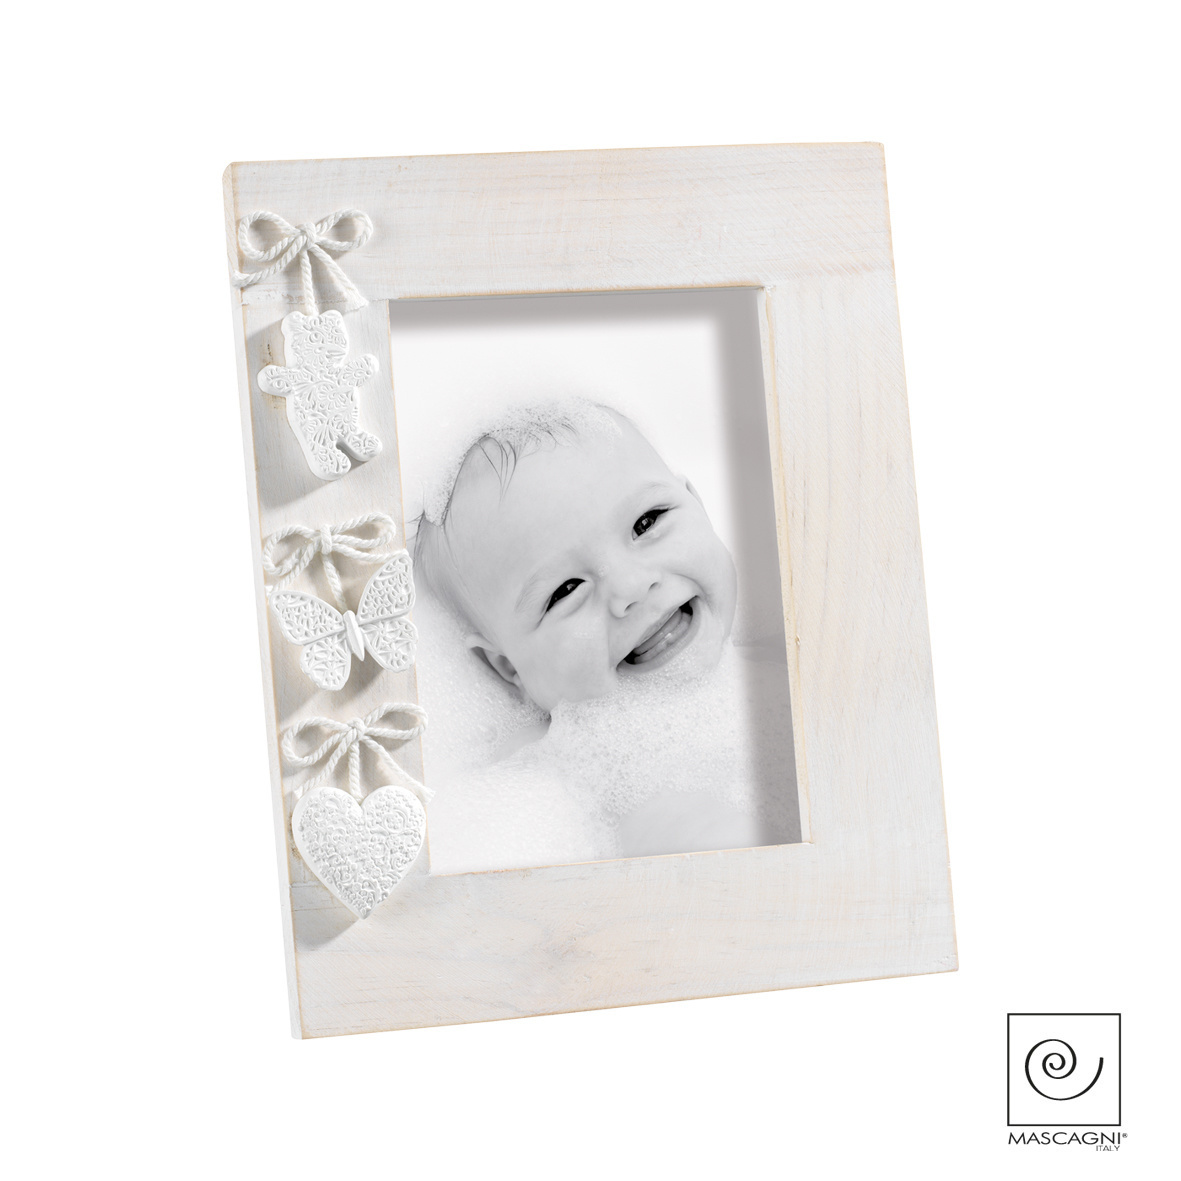 Art Mascagni A560 PHOTO FRAME 13X18 - COL.WHITE